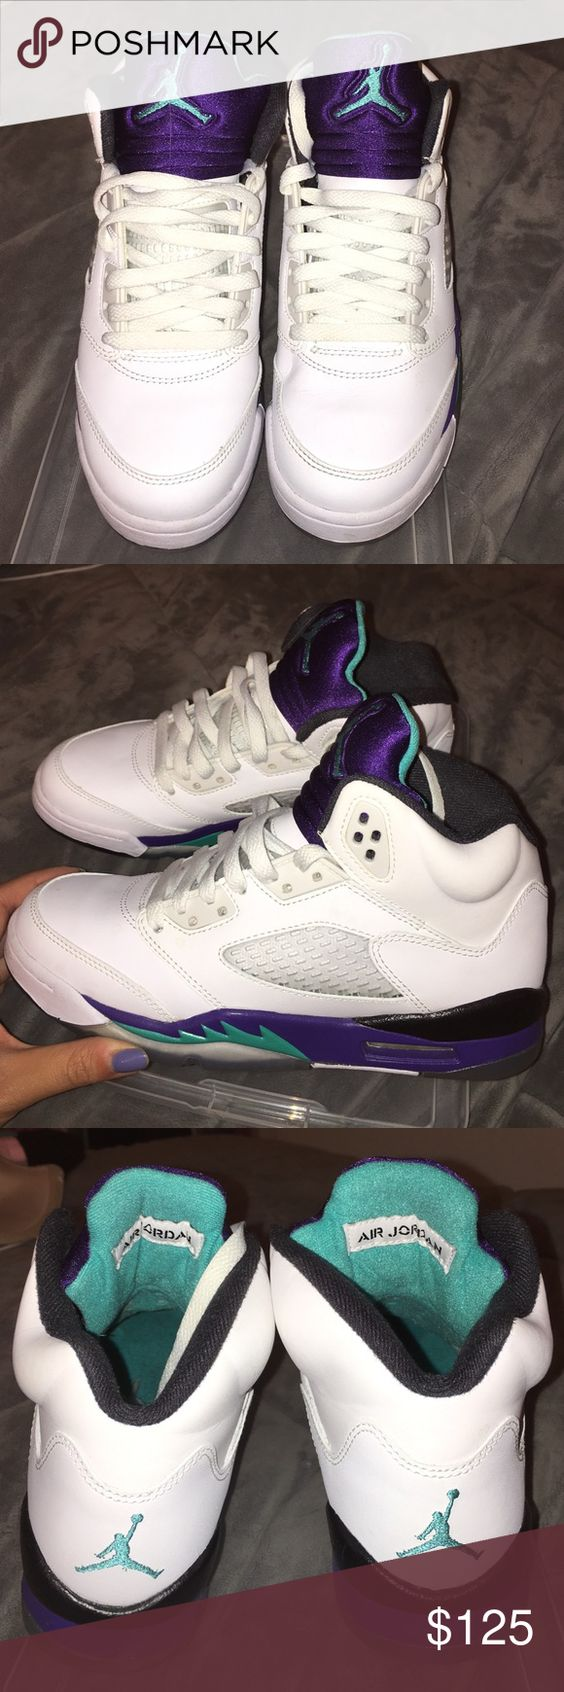 """Authentic Jordan Retro 5 """"White Grape"""" - Size 5 GS 100% authentic, very near deadstock Jordan Retro 5 """"Grape."""" Size 5 GS. Comes with OG box. Thanks for looking! Jordan Shoes Sneakers"""